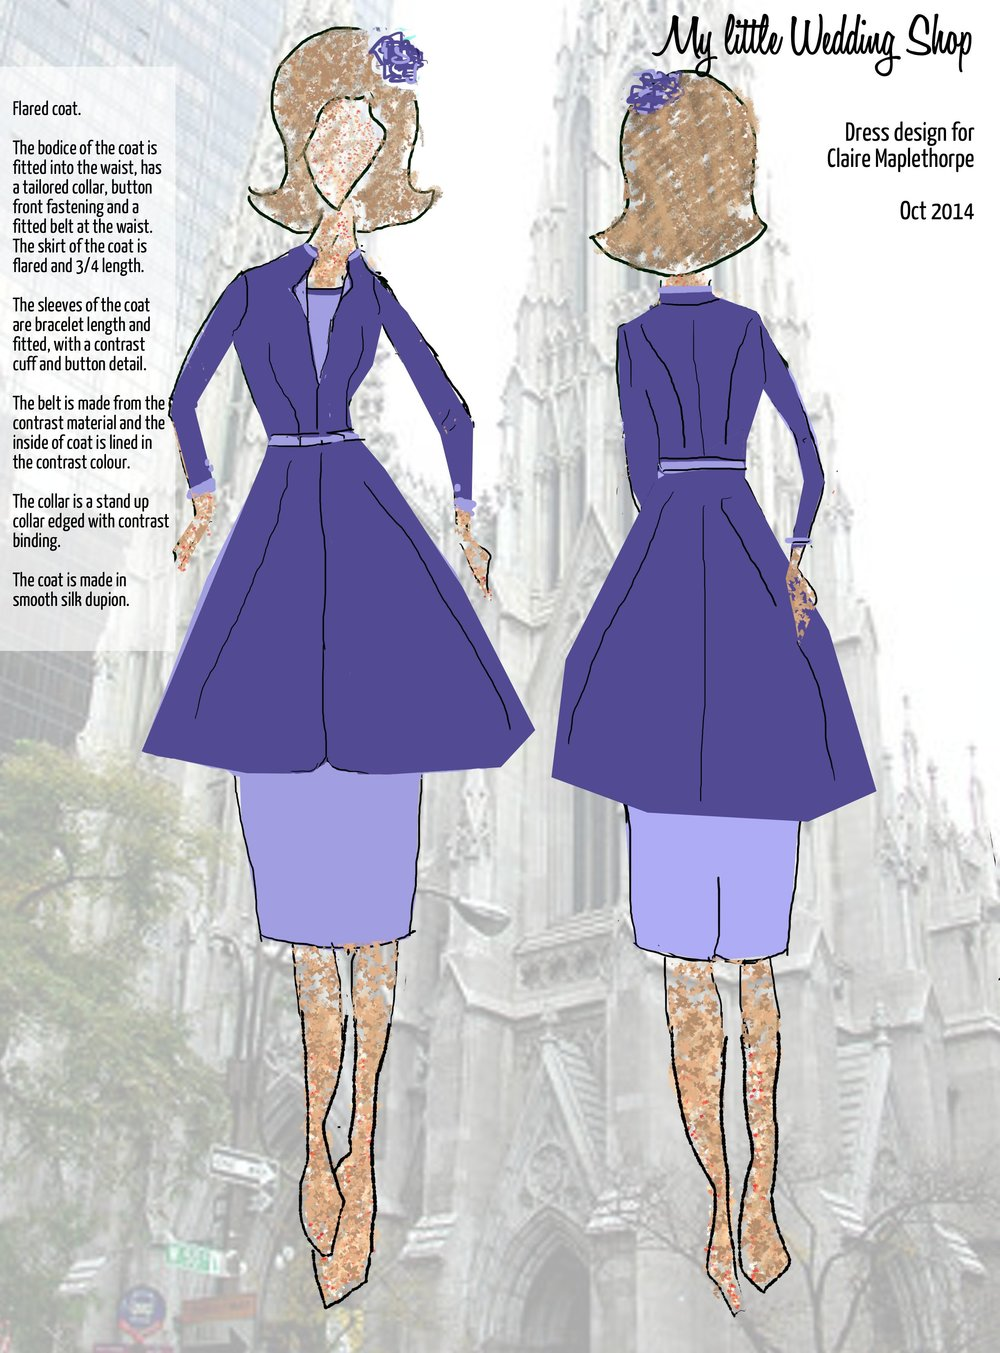 CM Coat design Oct 2014.jpg